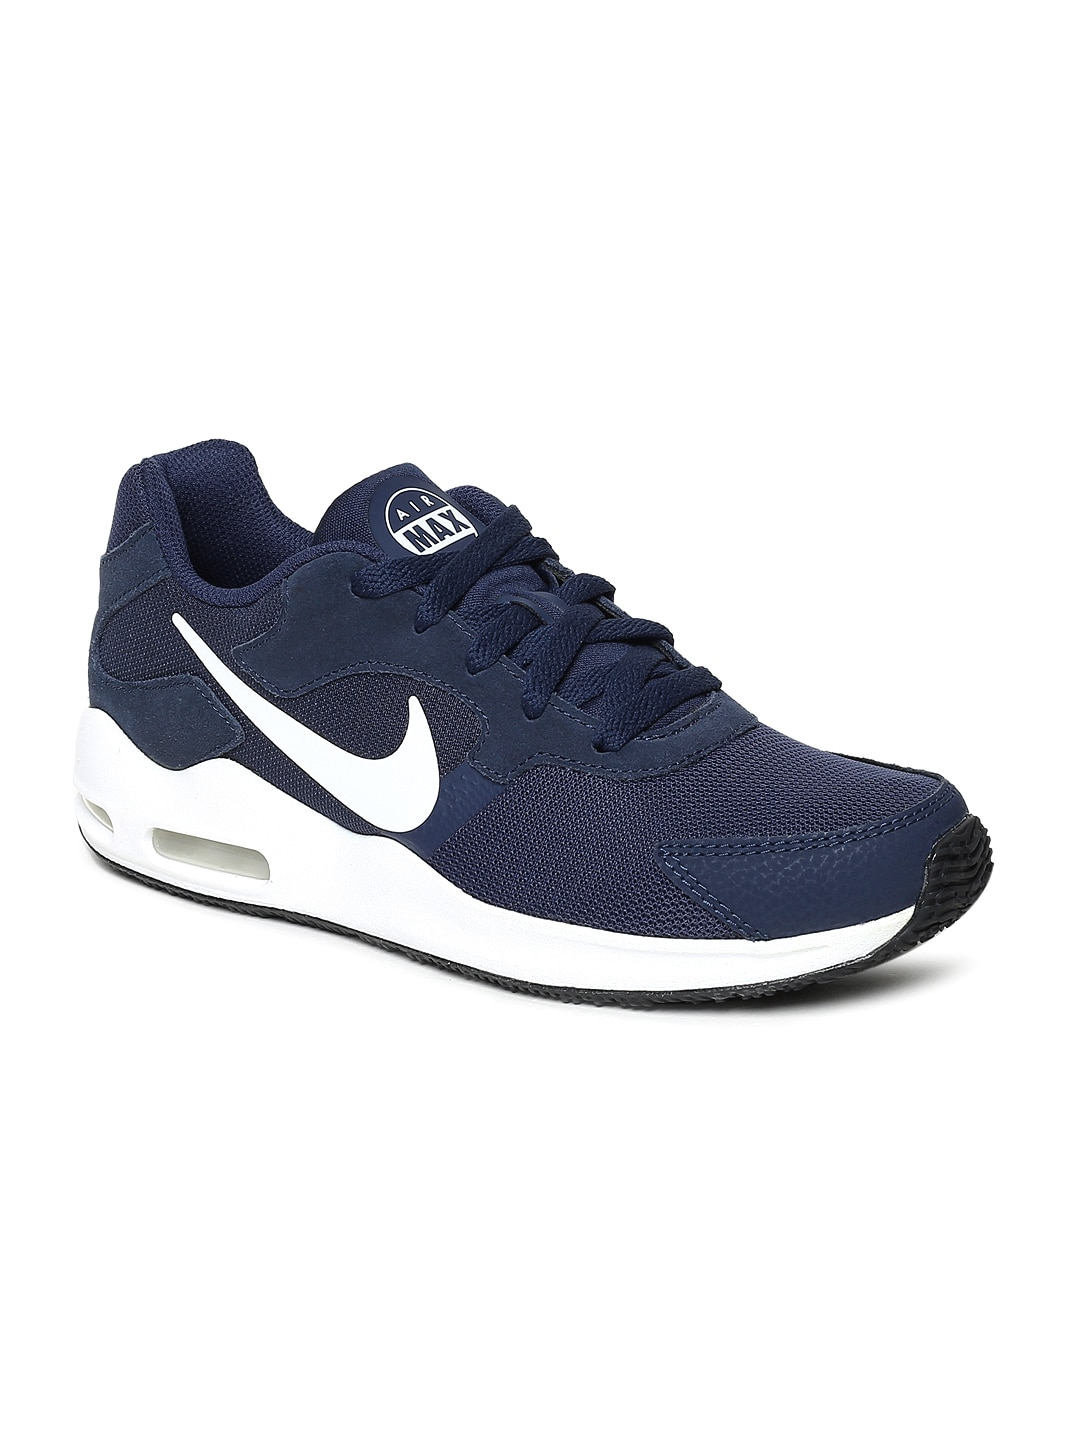 232394265e9914 Nike Air Max - Buy Nike Air Max Shoes